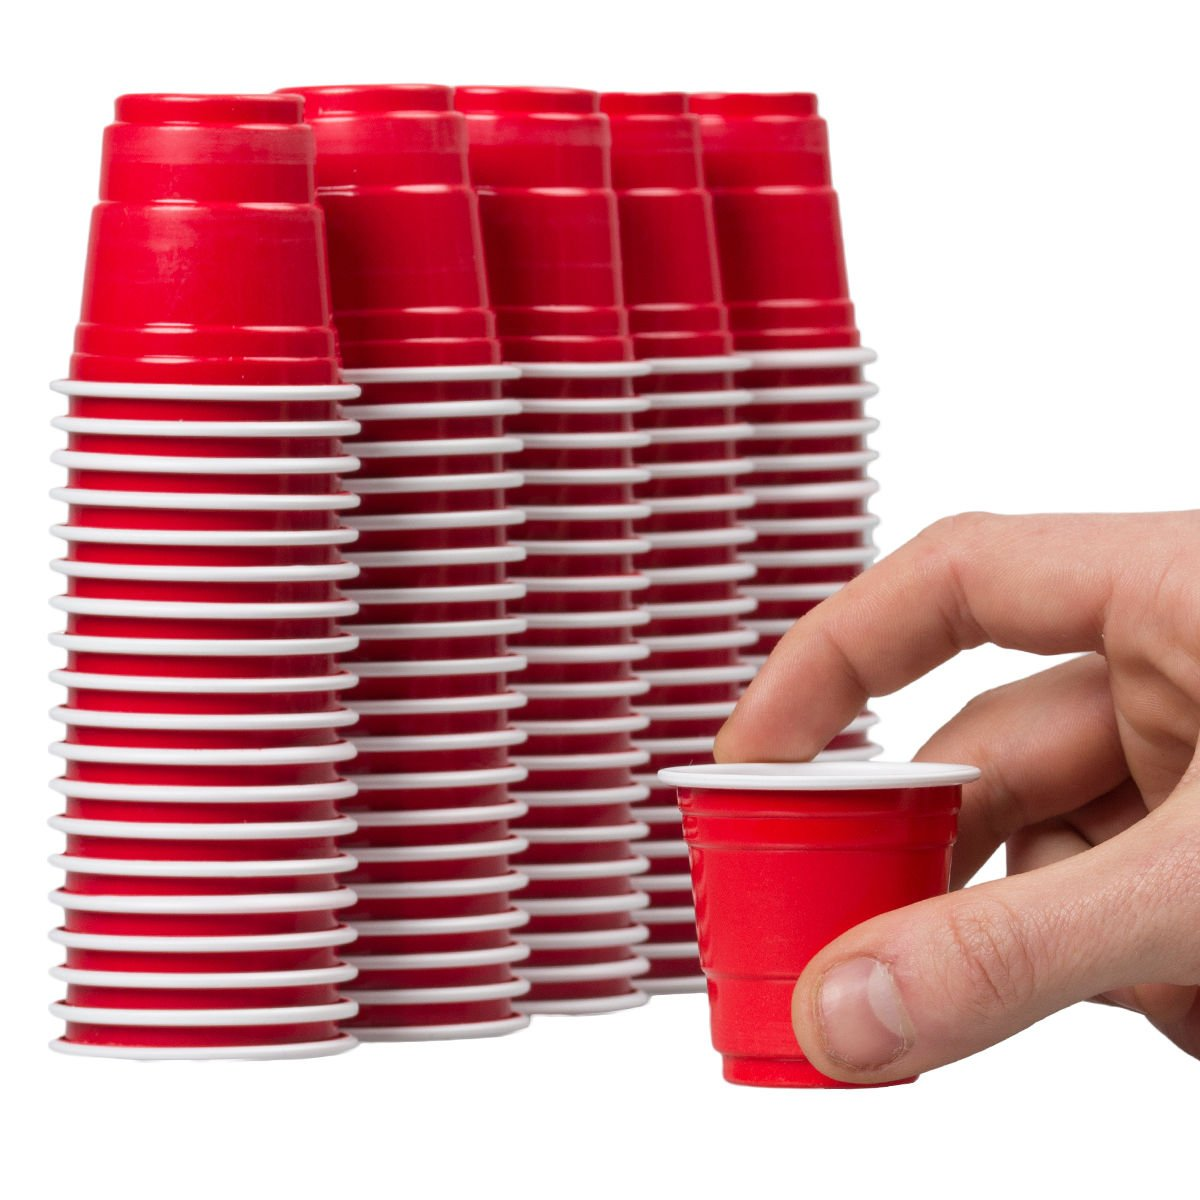 Disposable Shot Glasses - 100 Mini Cups Red Solo Party - Plastic Shot Cups - Jello Shots - Jager Bomb Cups - Beer Pong Cups - Perfect Size for Serving Condiments, Nuts and Samples by TopNotch Outlet